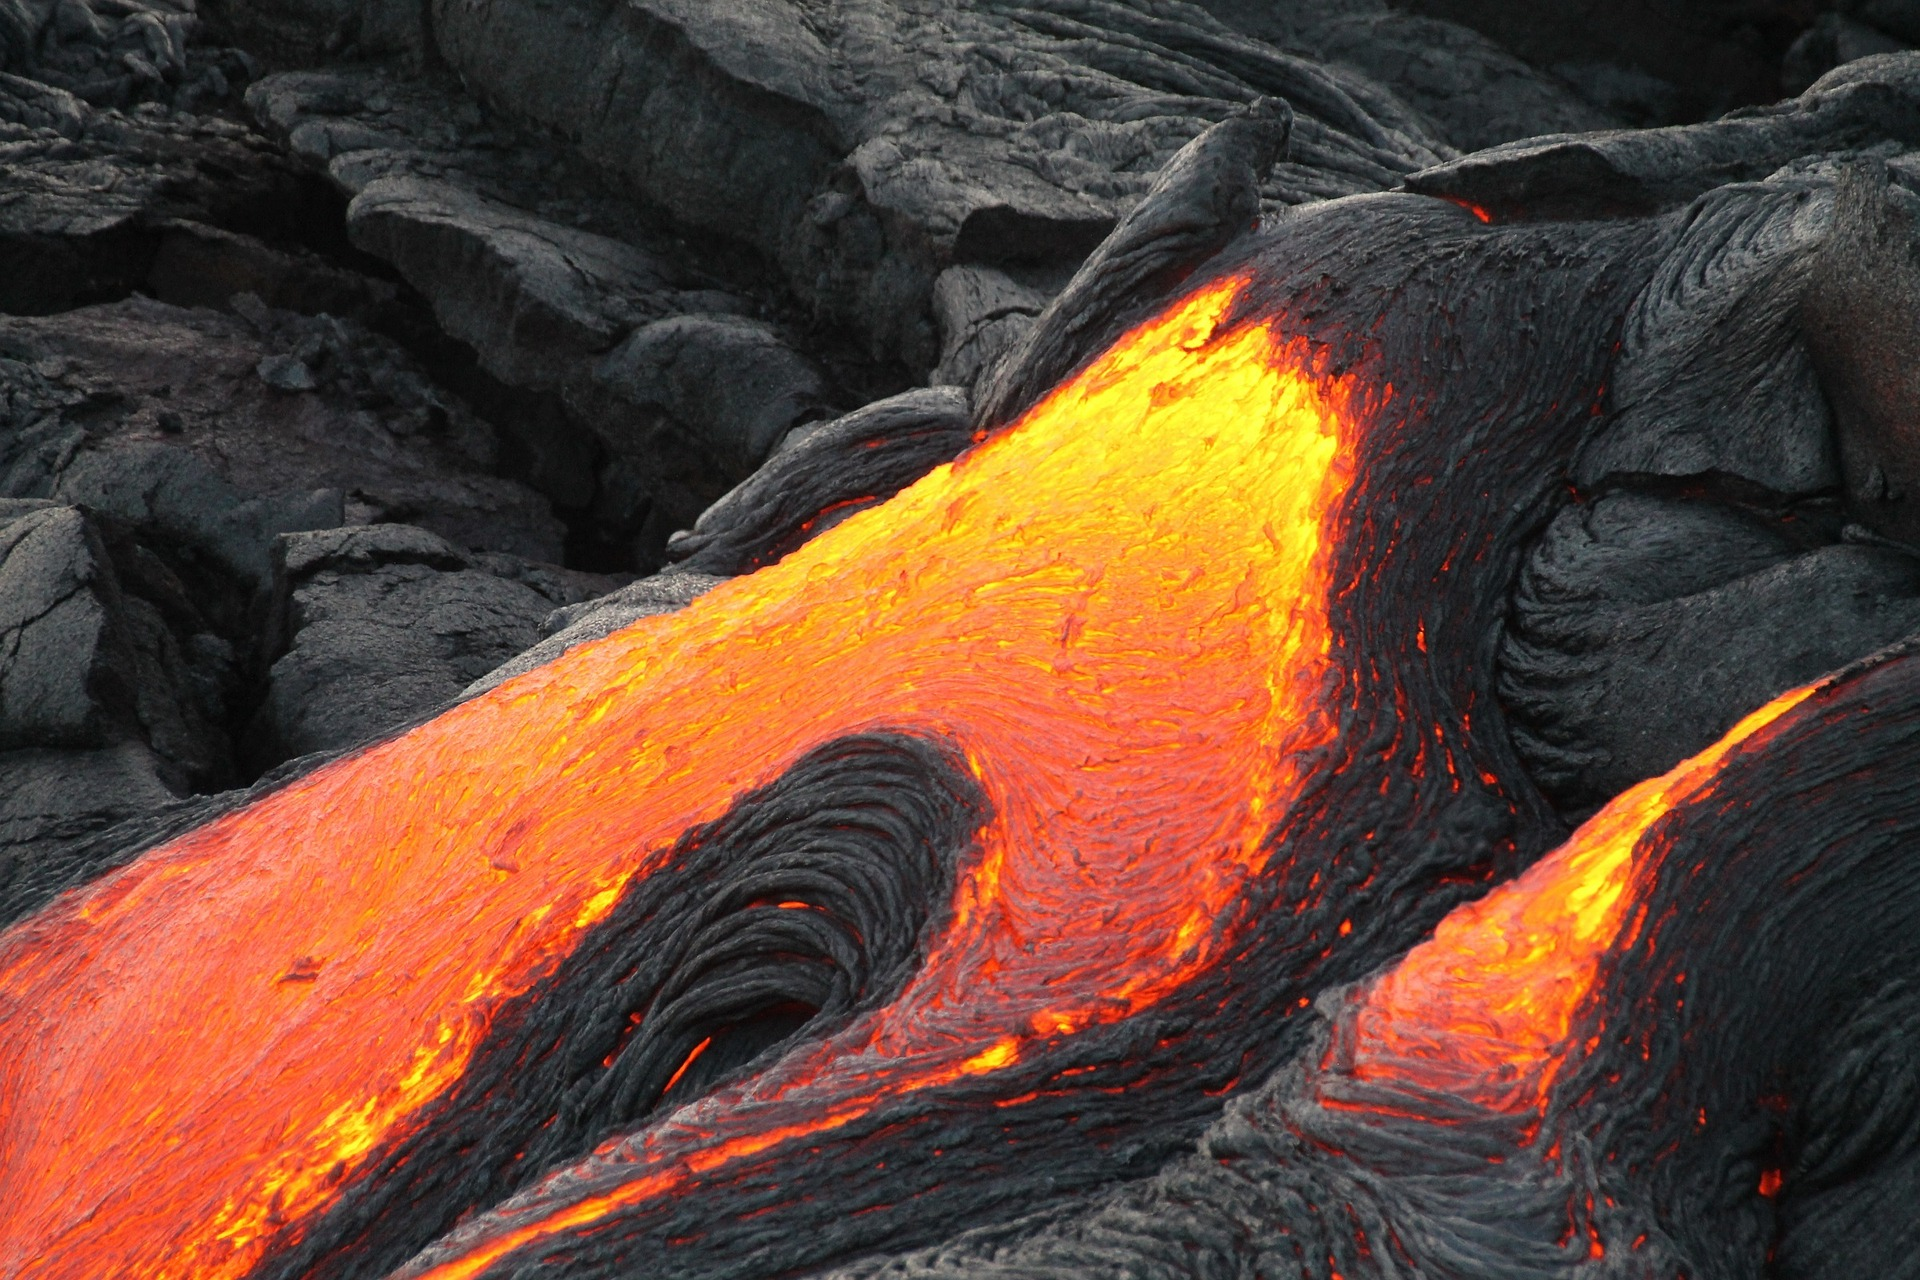 Volcano lava flowing - Image from Pixabay